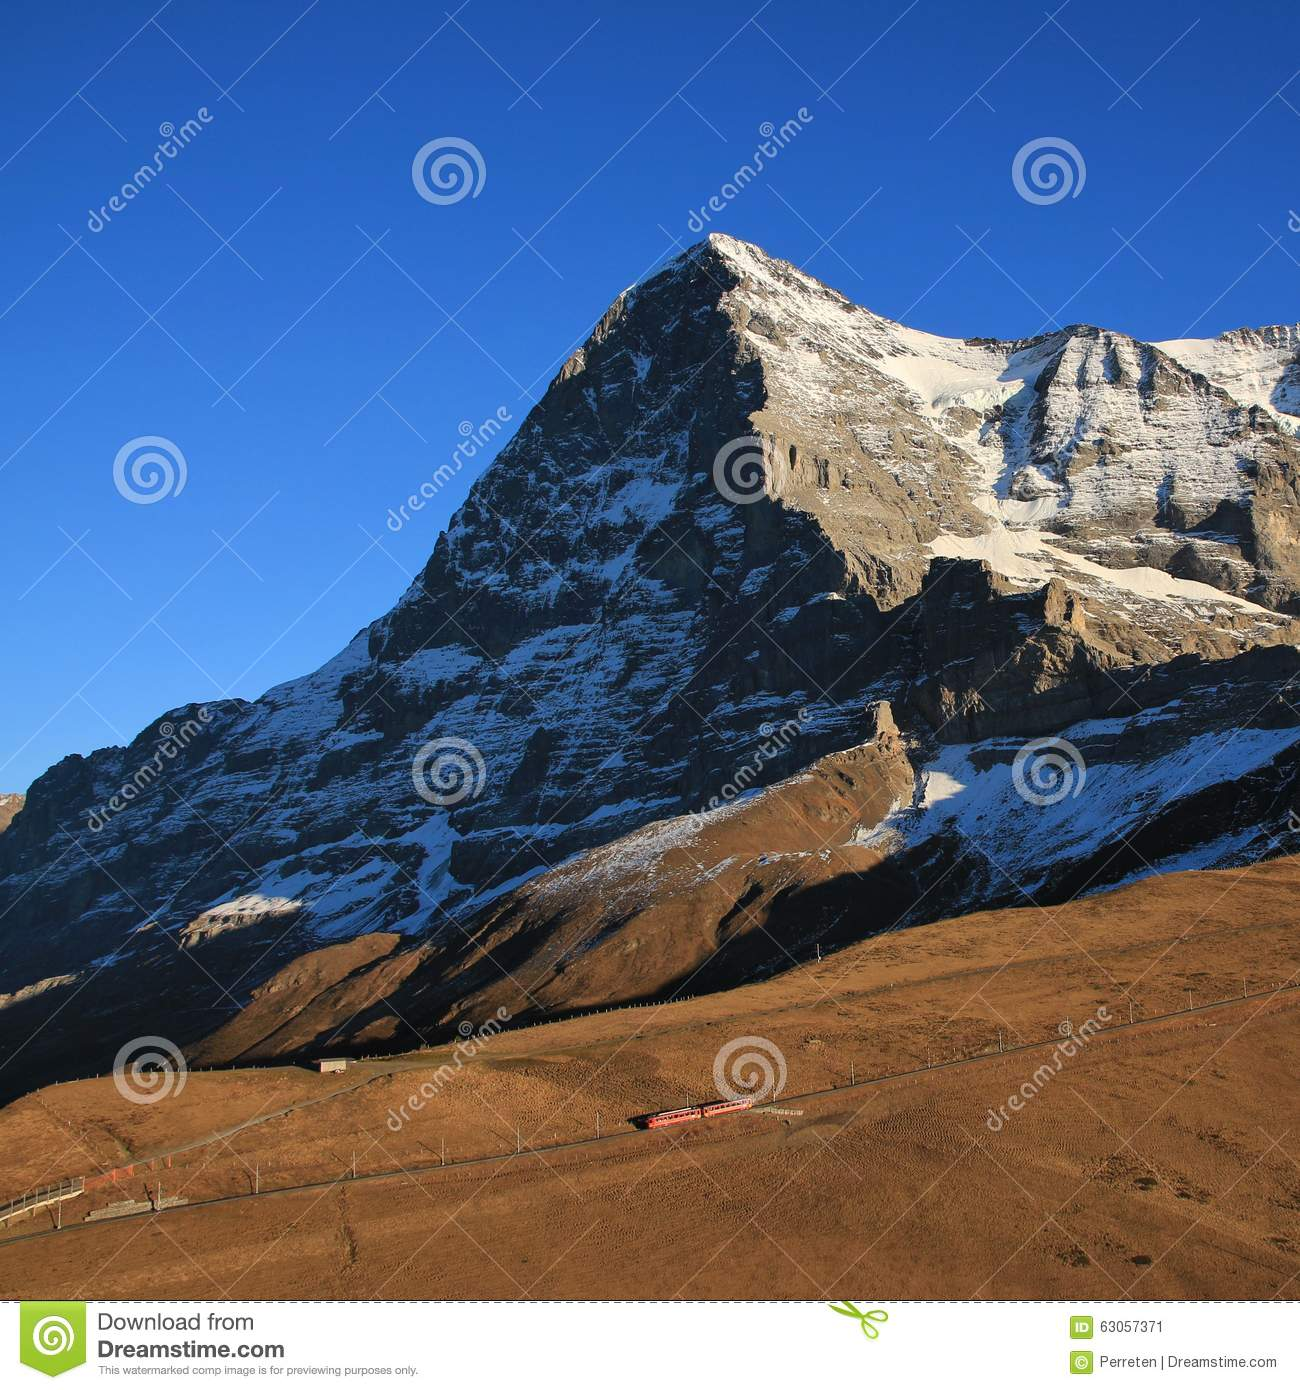 Eiger North Face And Train Stock Photo.